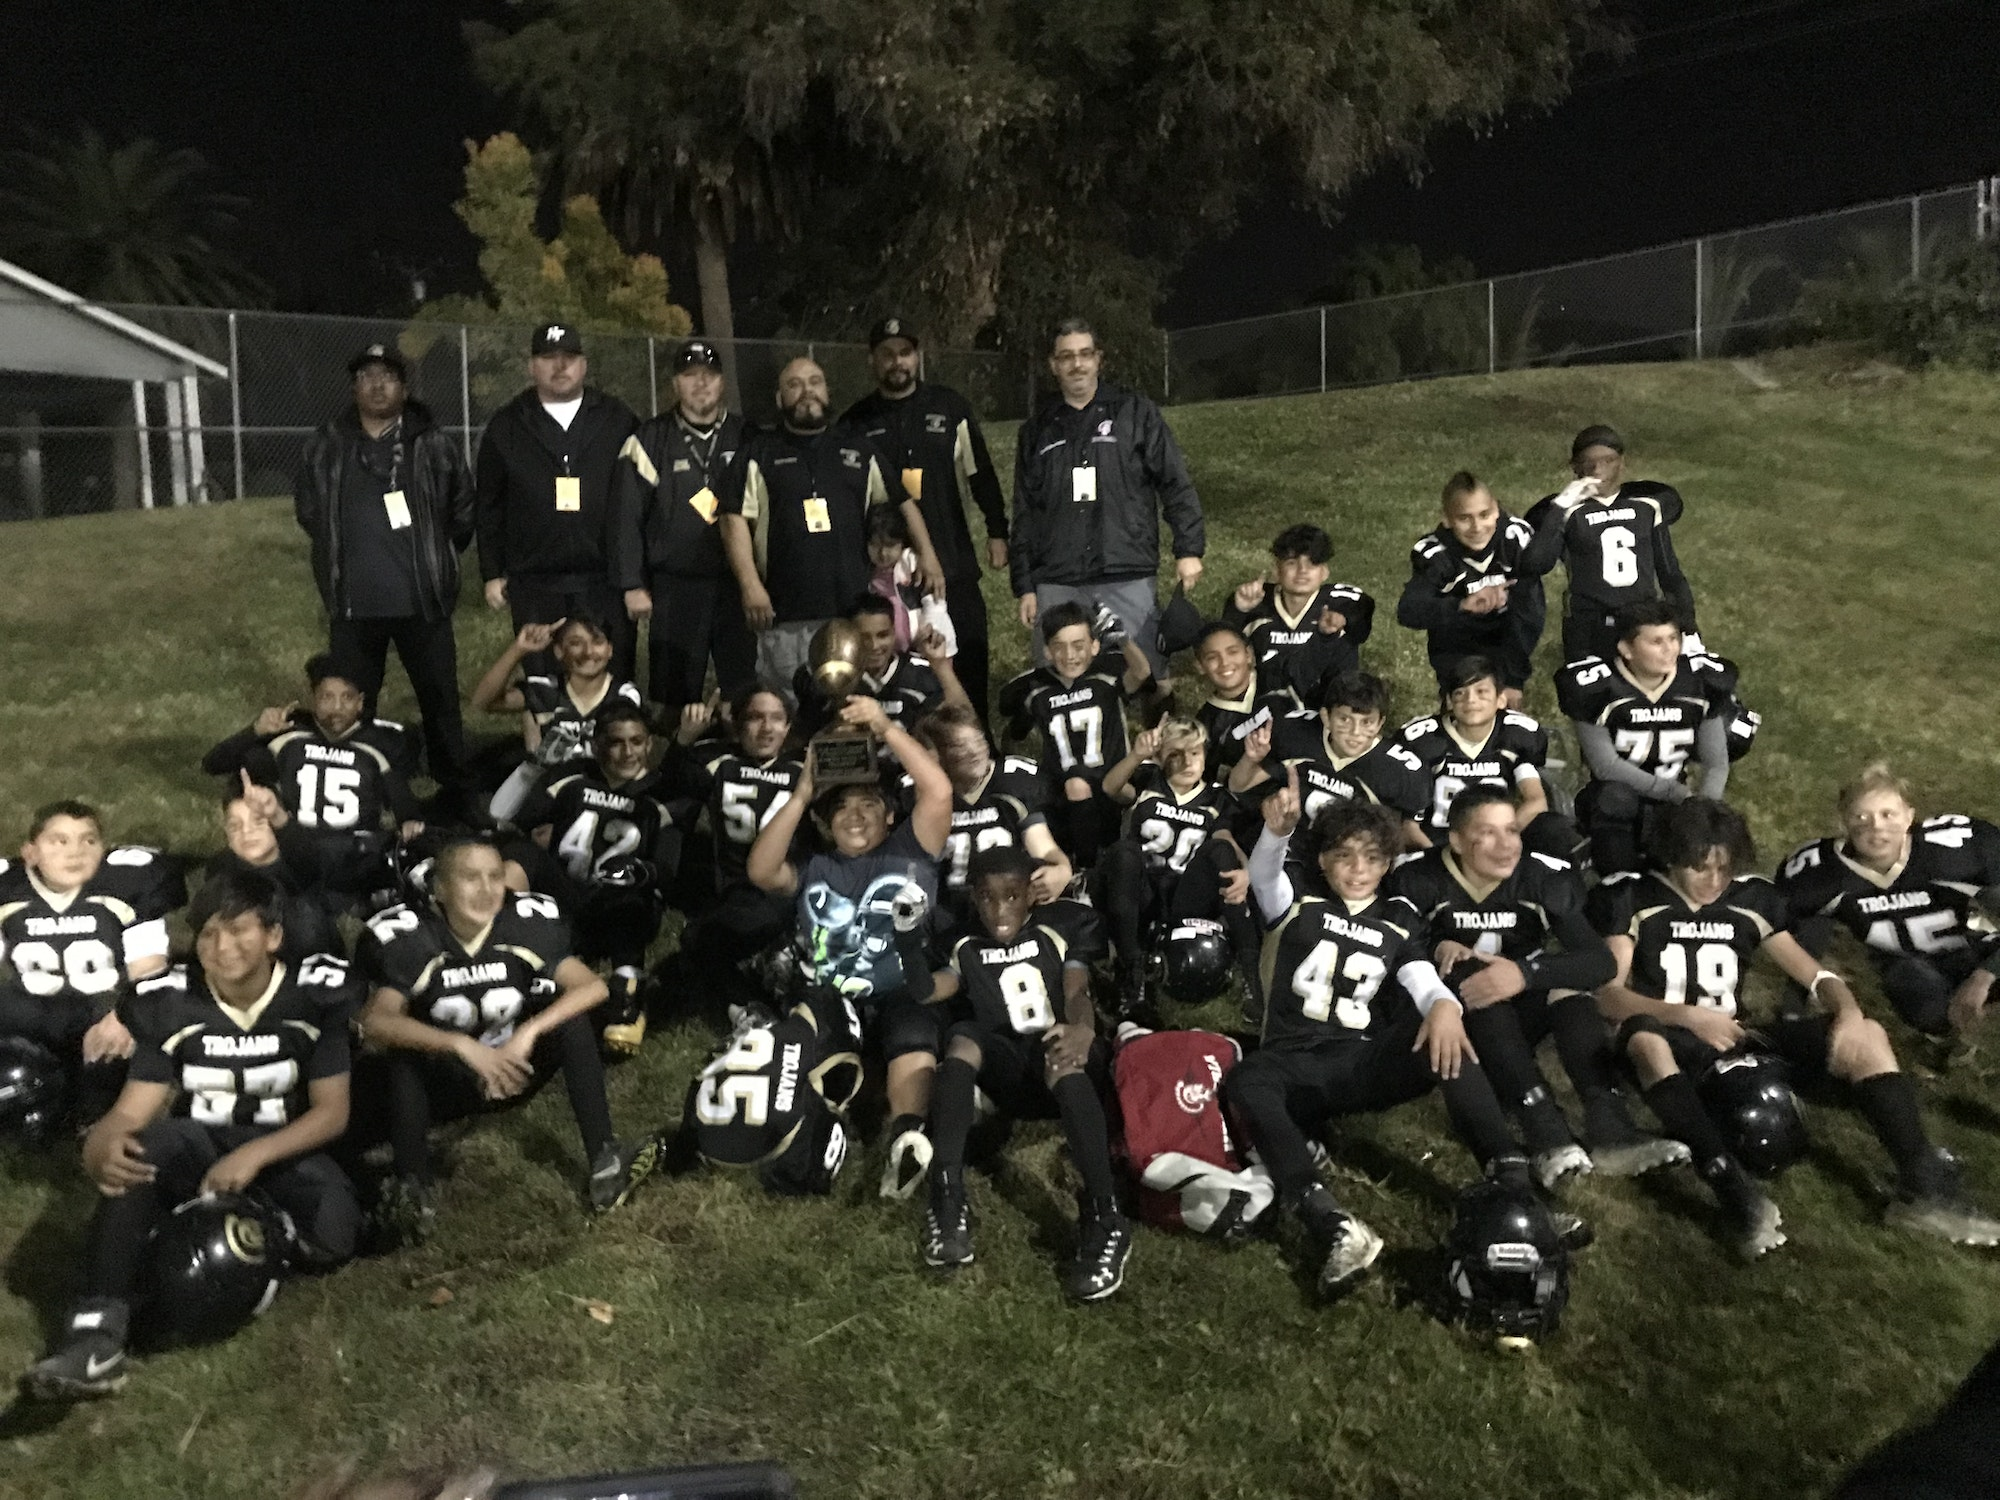 Hesperia Trojans Jr. Pee Wee 2018 team after winning the D1AA 2018 Southern California Junior All-American Conference Championship